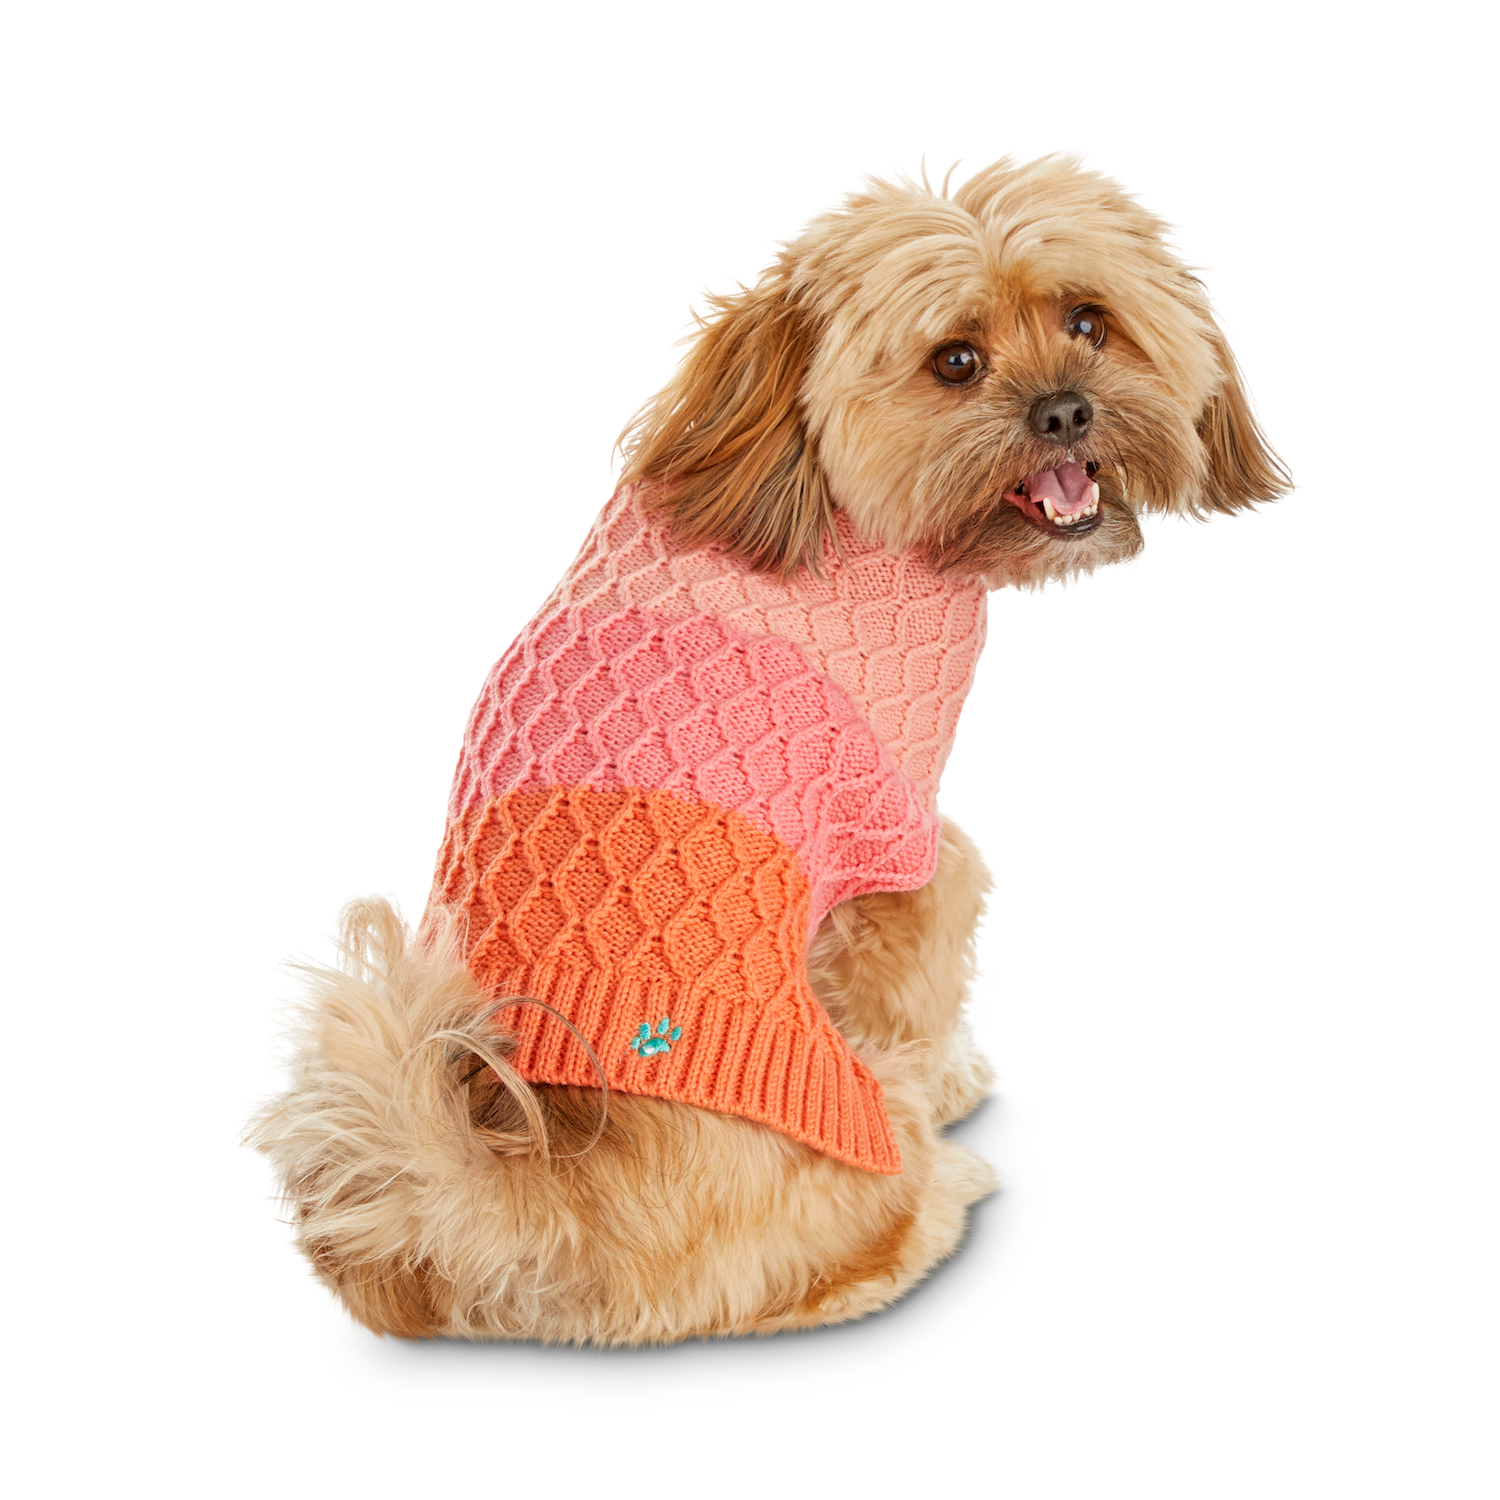 Dog wearing pink ombre dog sweater